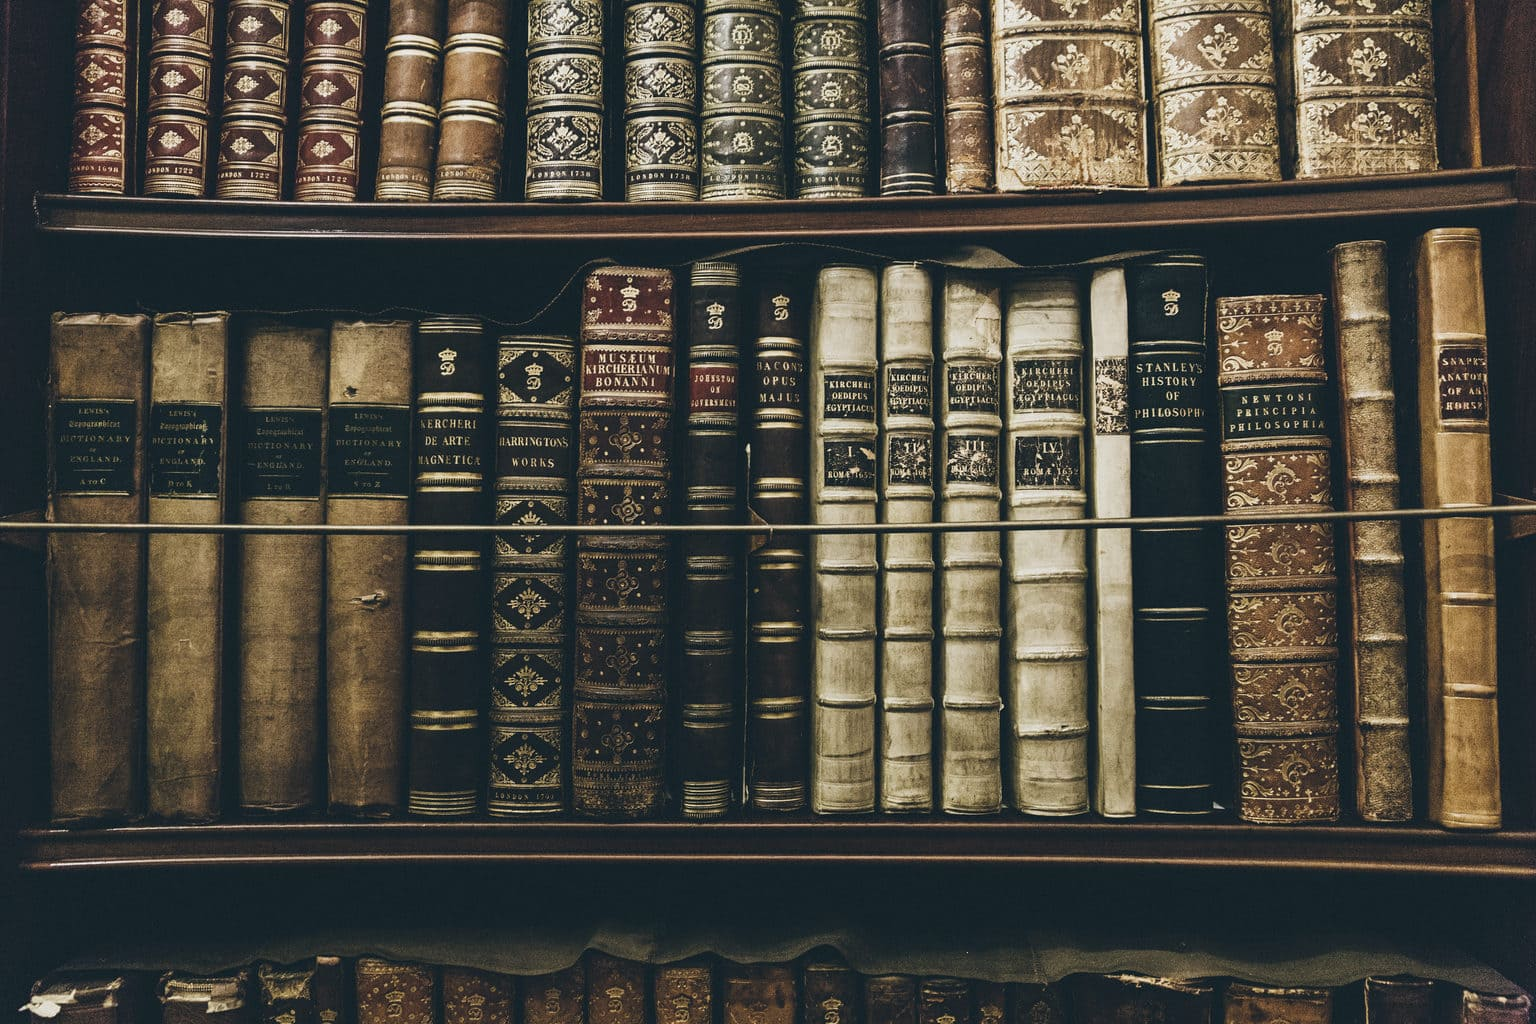 A library shelf full of old, elaborately decorative books